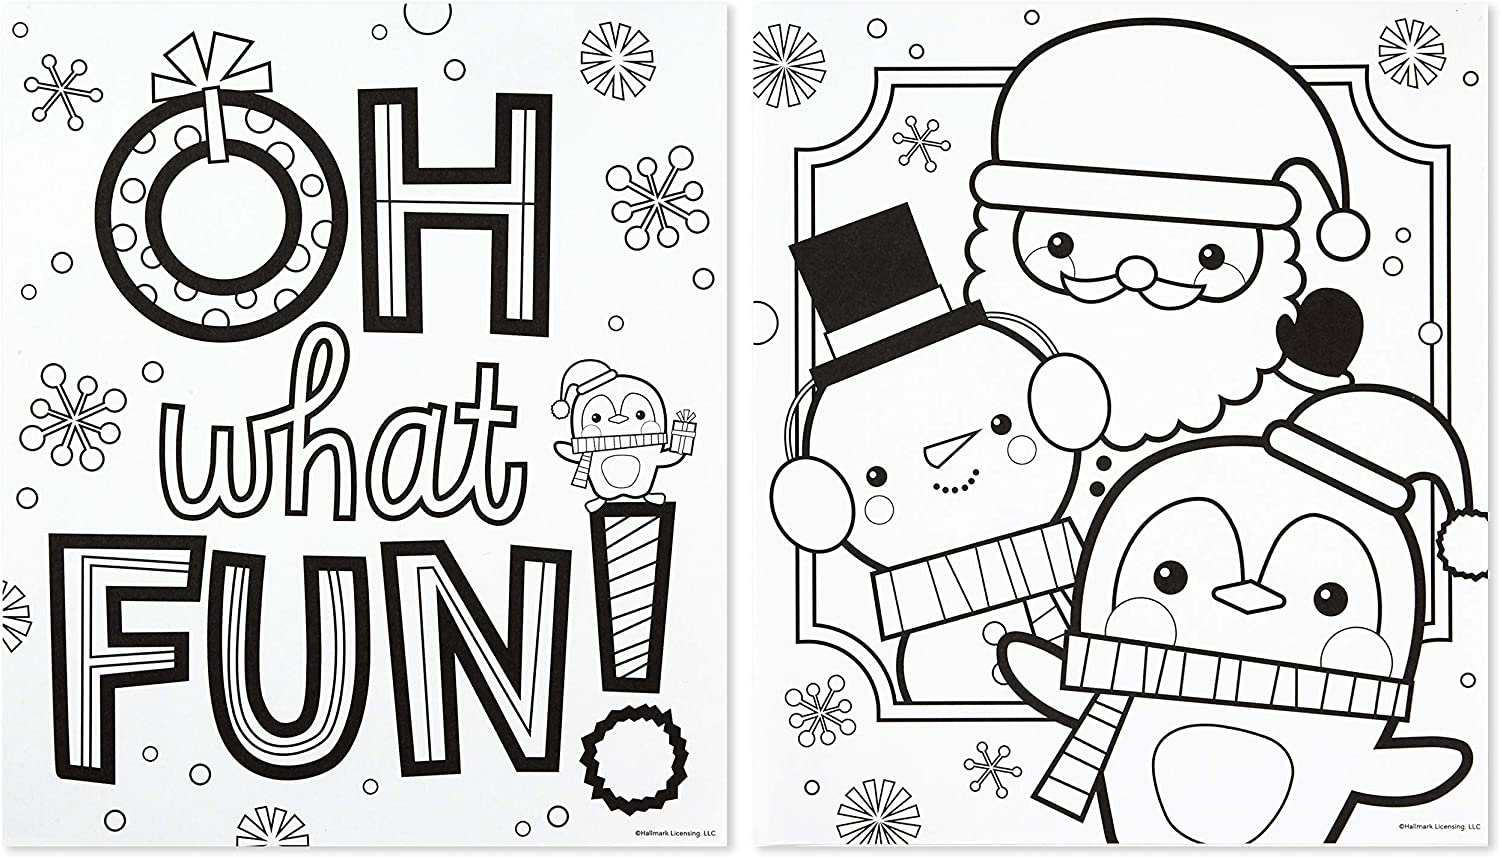 Envelopes Coloring Pages And Crayons Polar Friends Hallmark Letters To Santa Kit With Stickers Greeting Card Envelopes